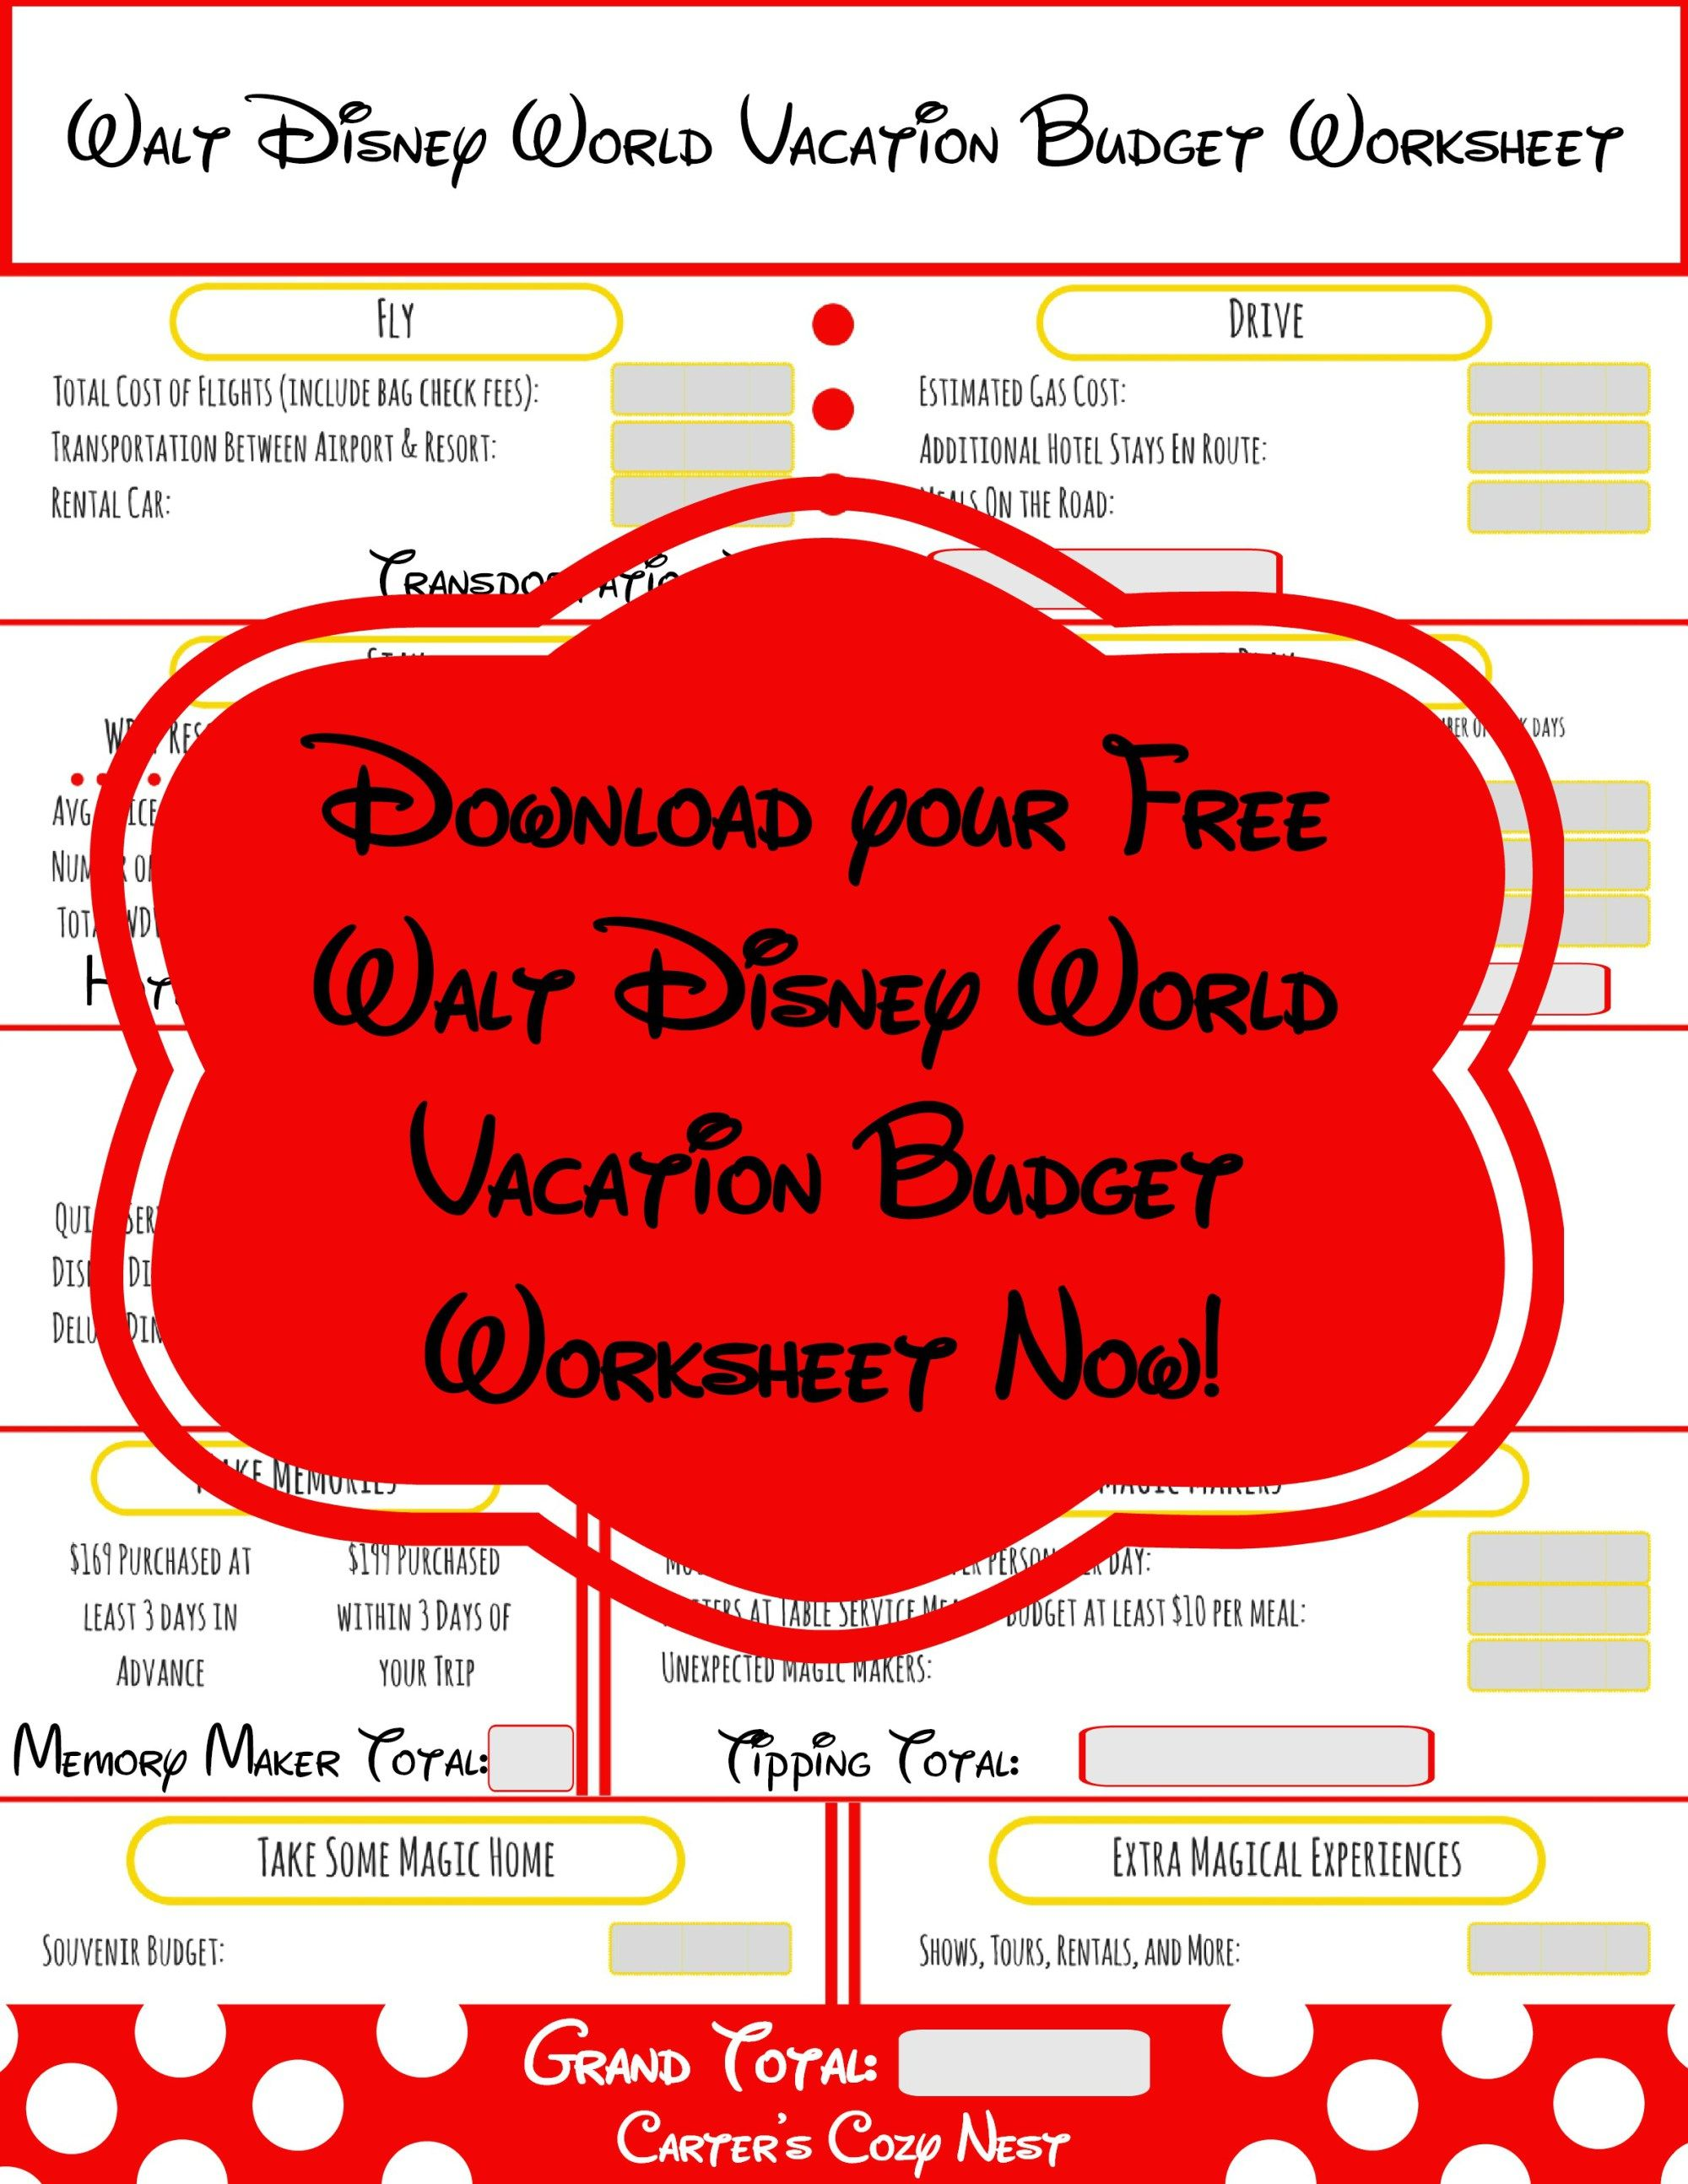 Walt Disney World Vacation Budget Worksheet  Disney world